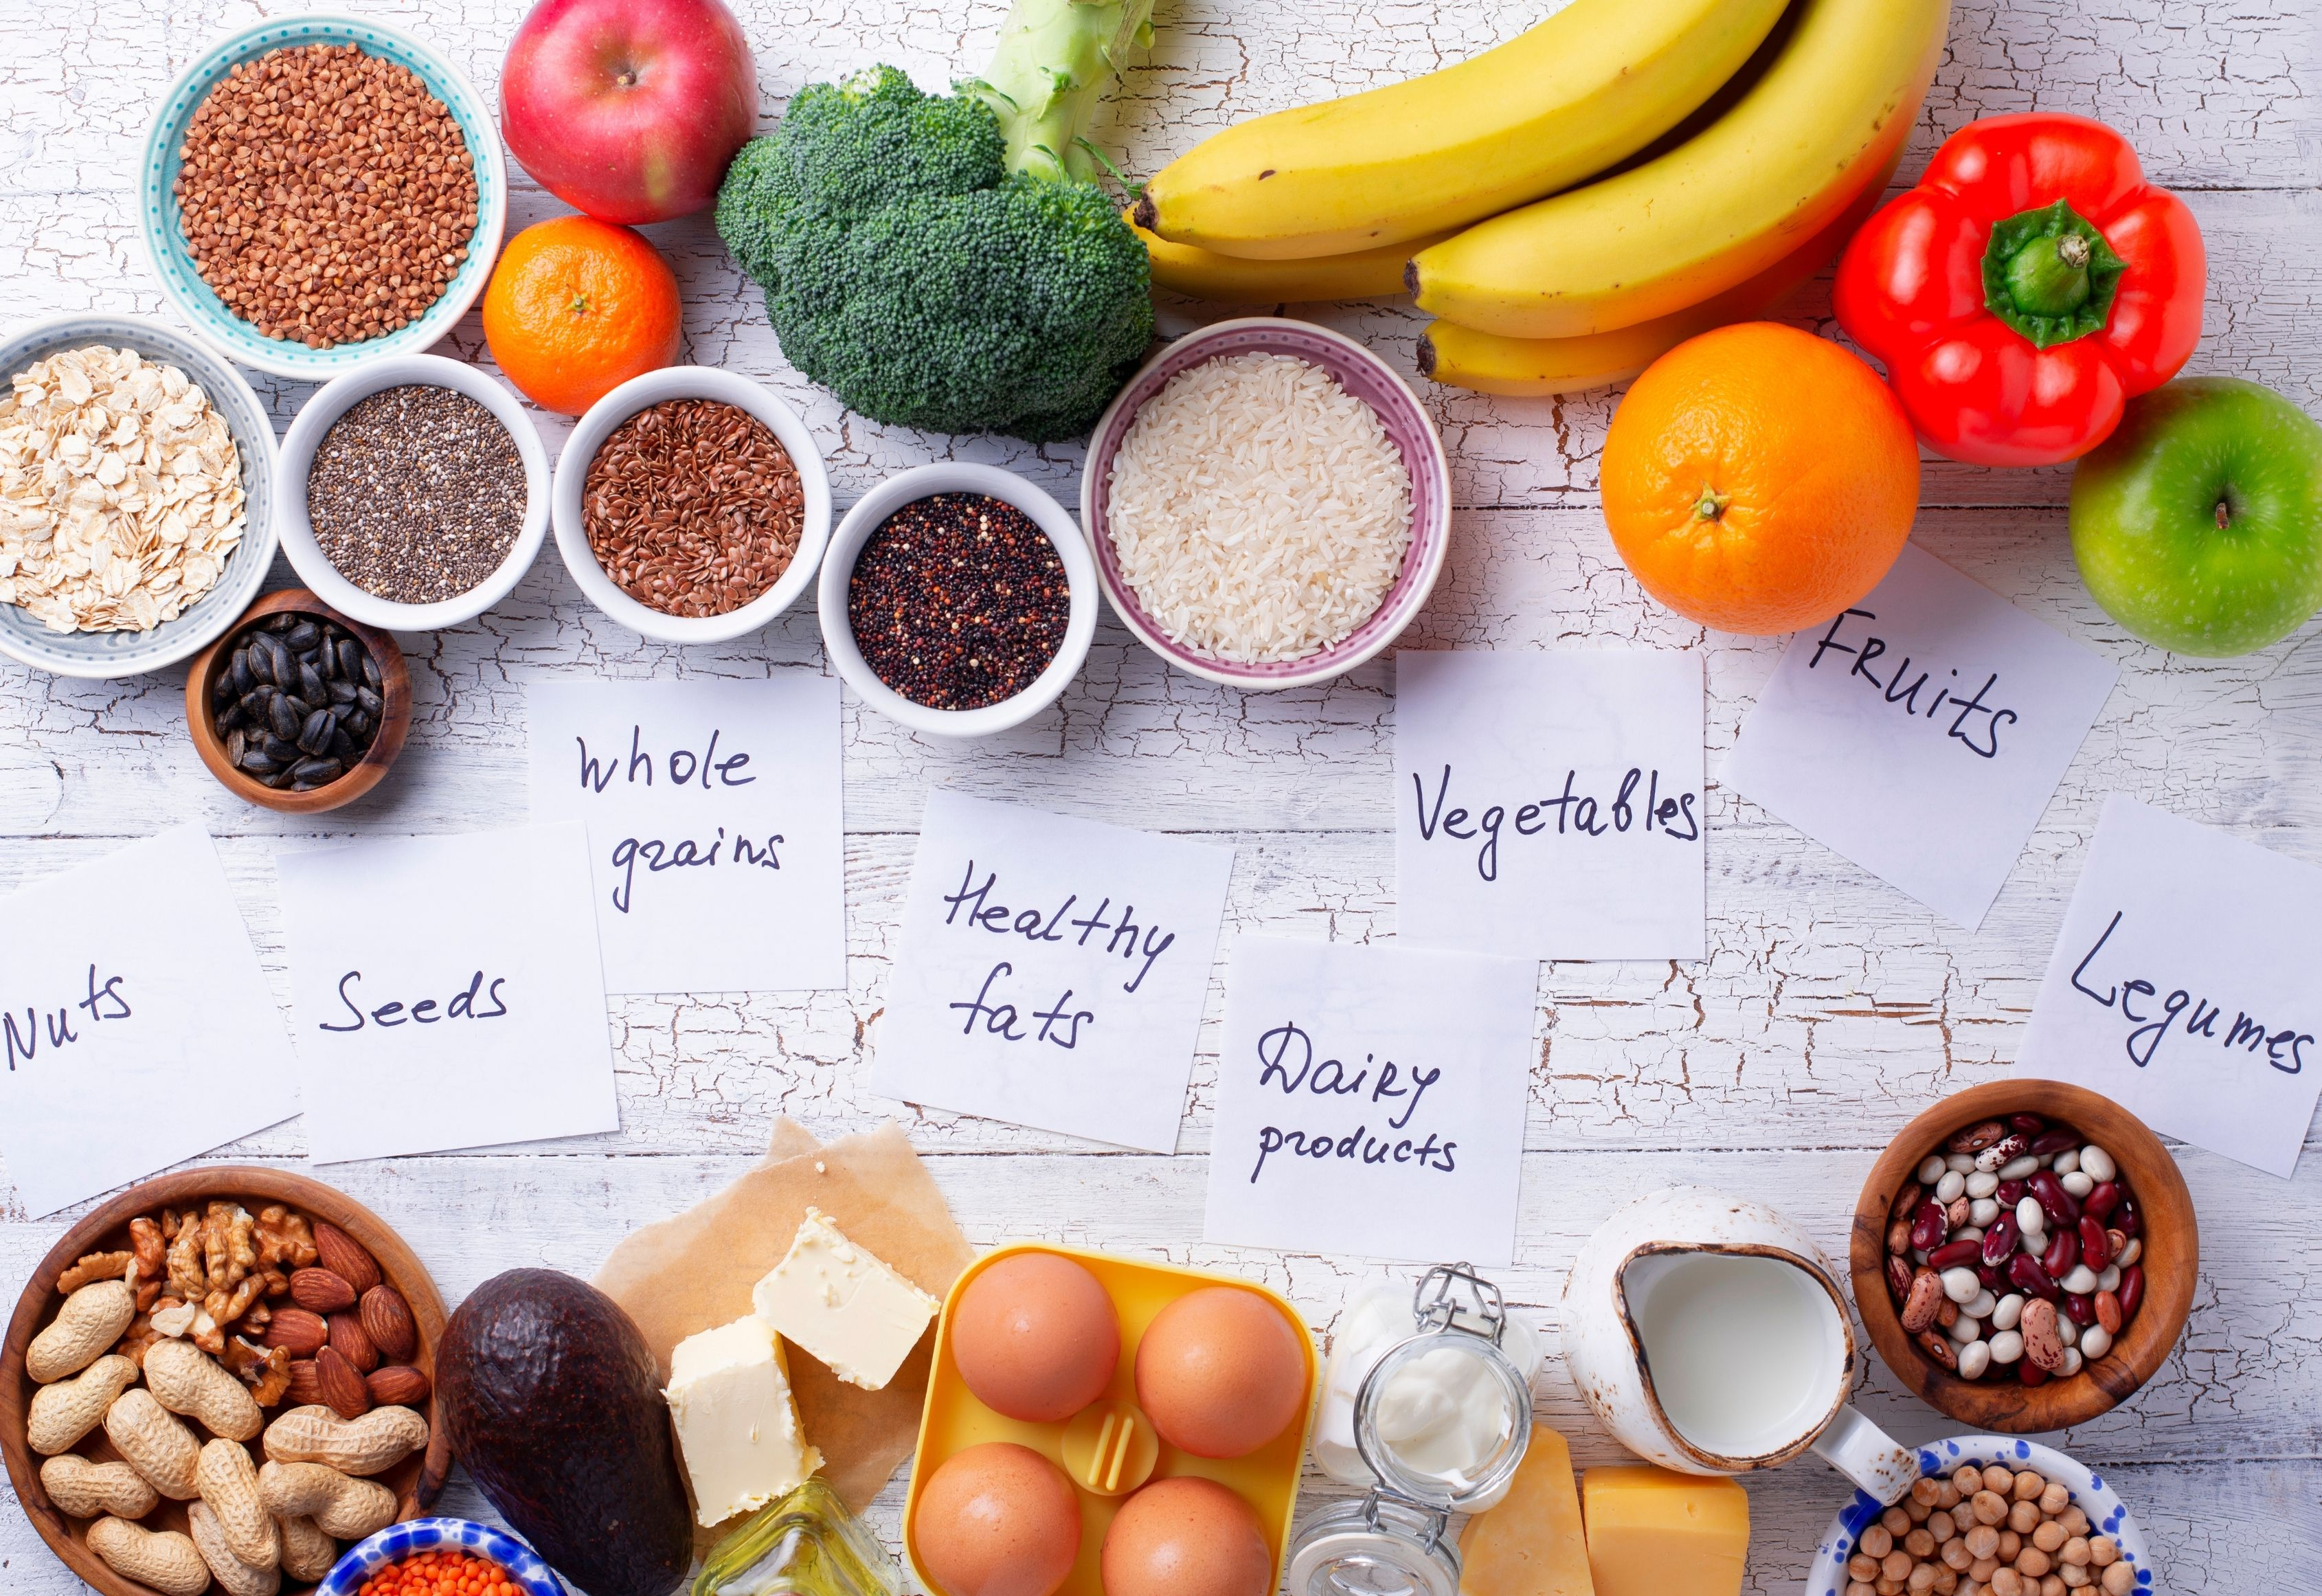 Ideal diet for healthy living - focus on making your meals healthy